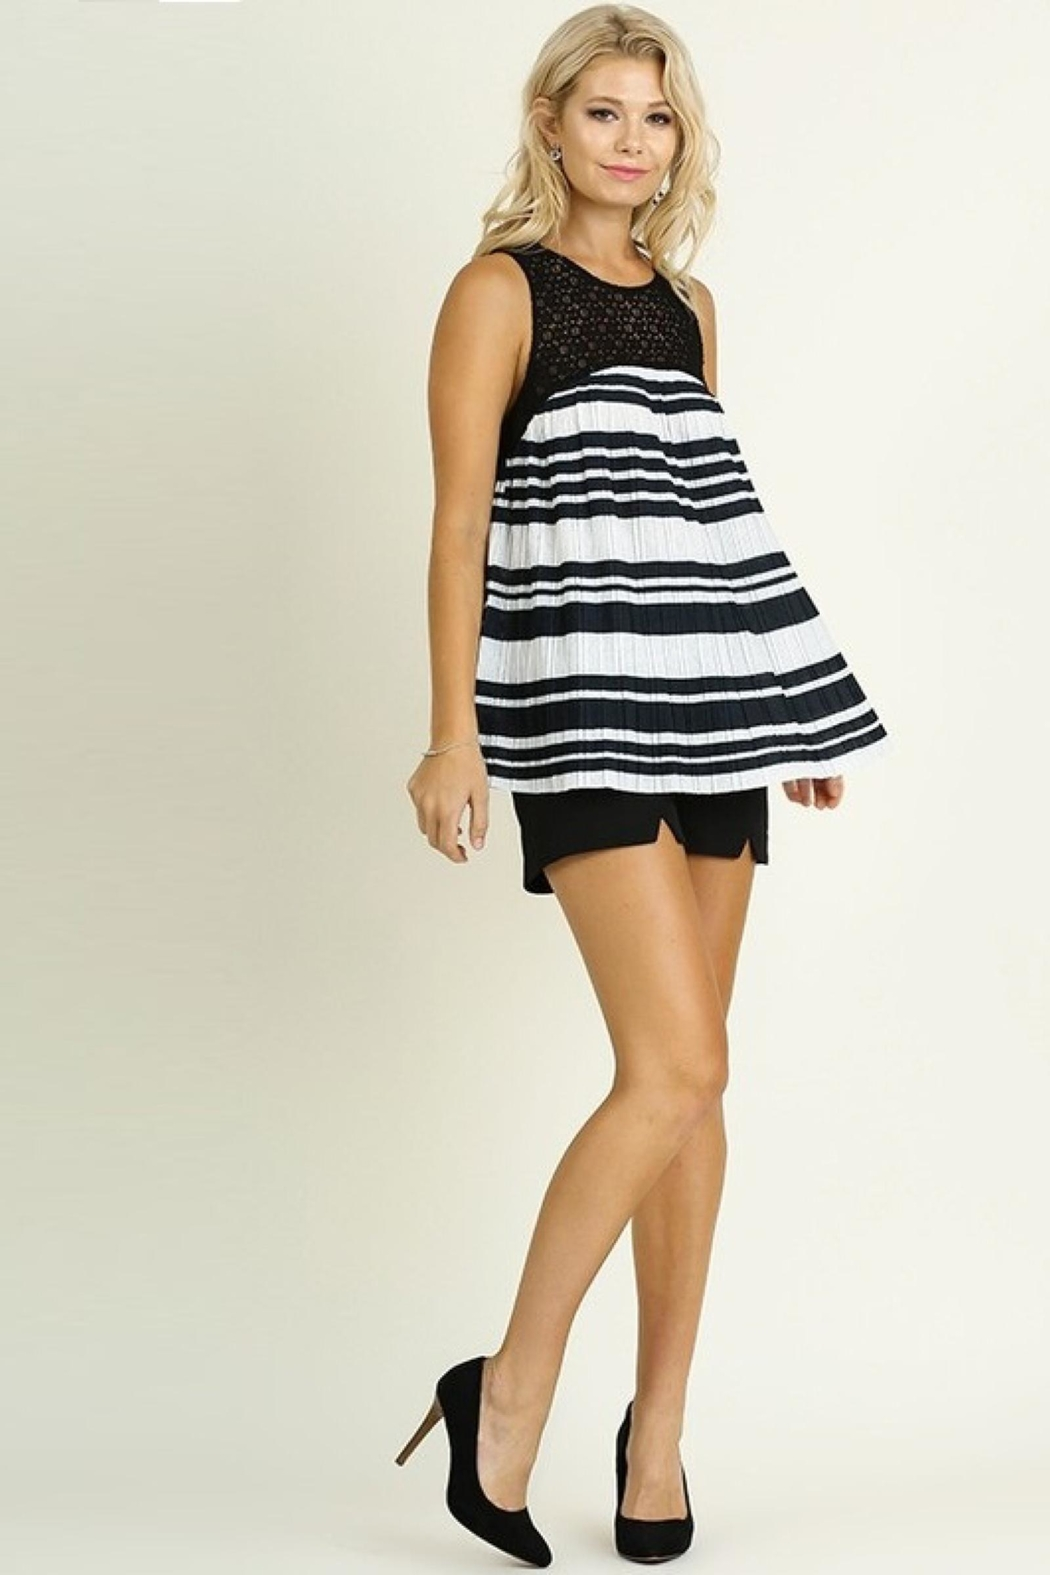 People Outfitter Striped Babydoll Top - Front Full Image